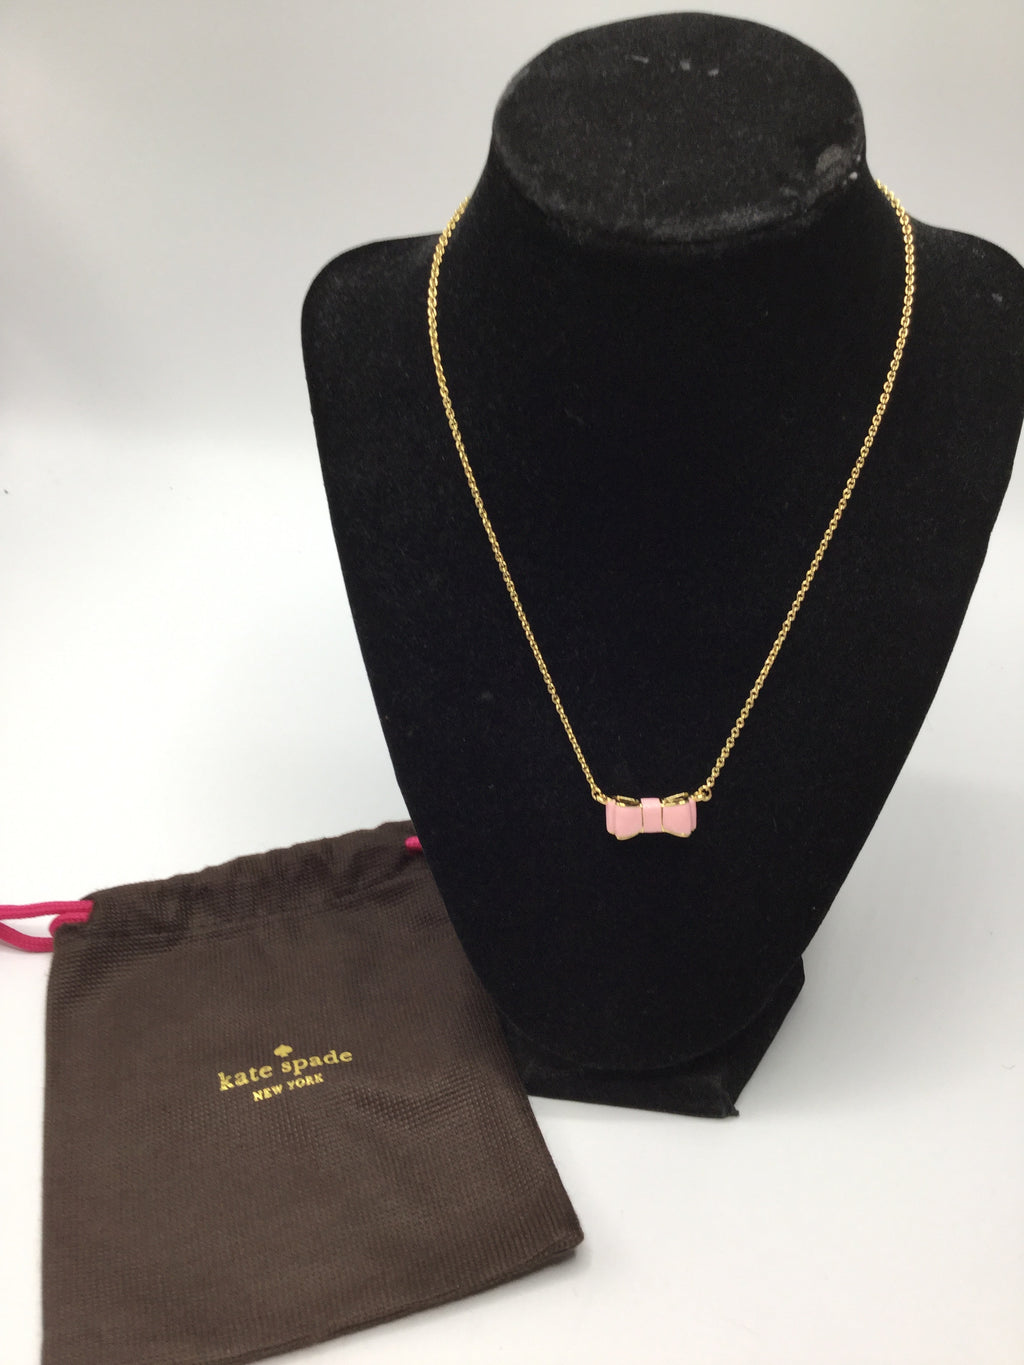 Kate Spade Moon River Pink Bow Necklace, NWT!